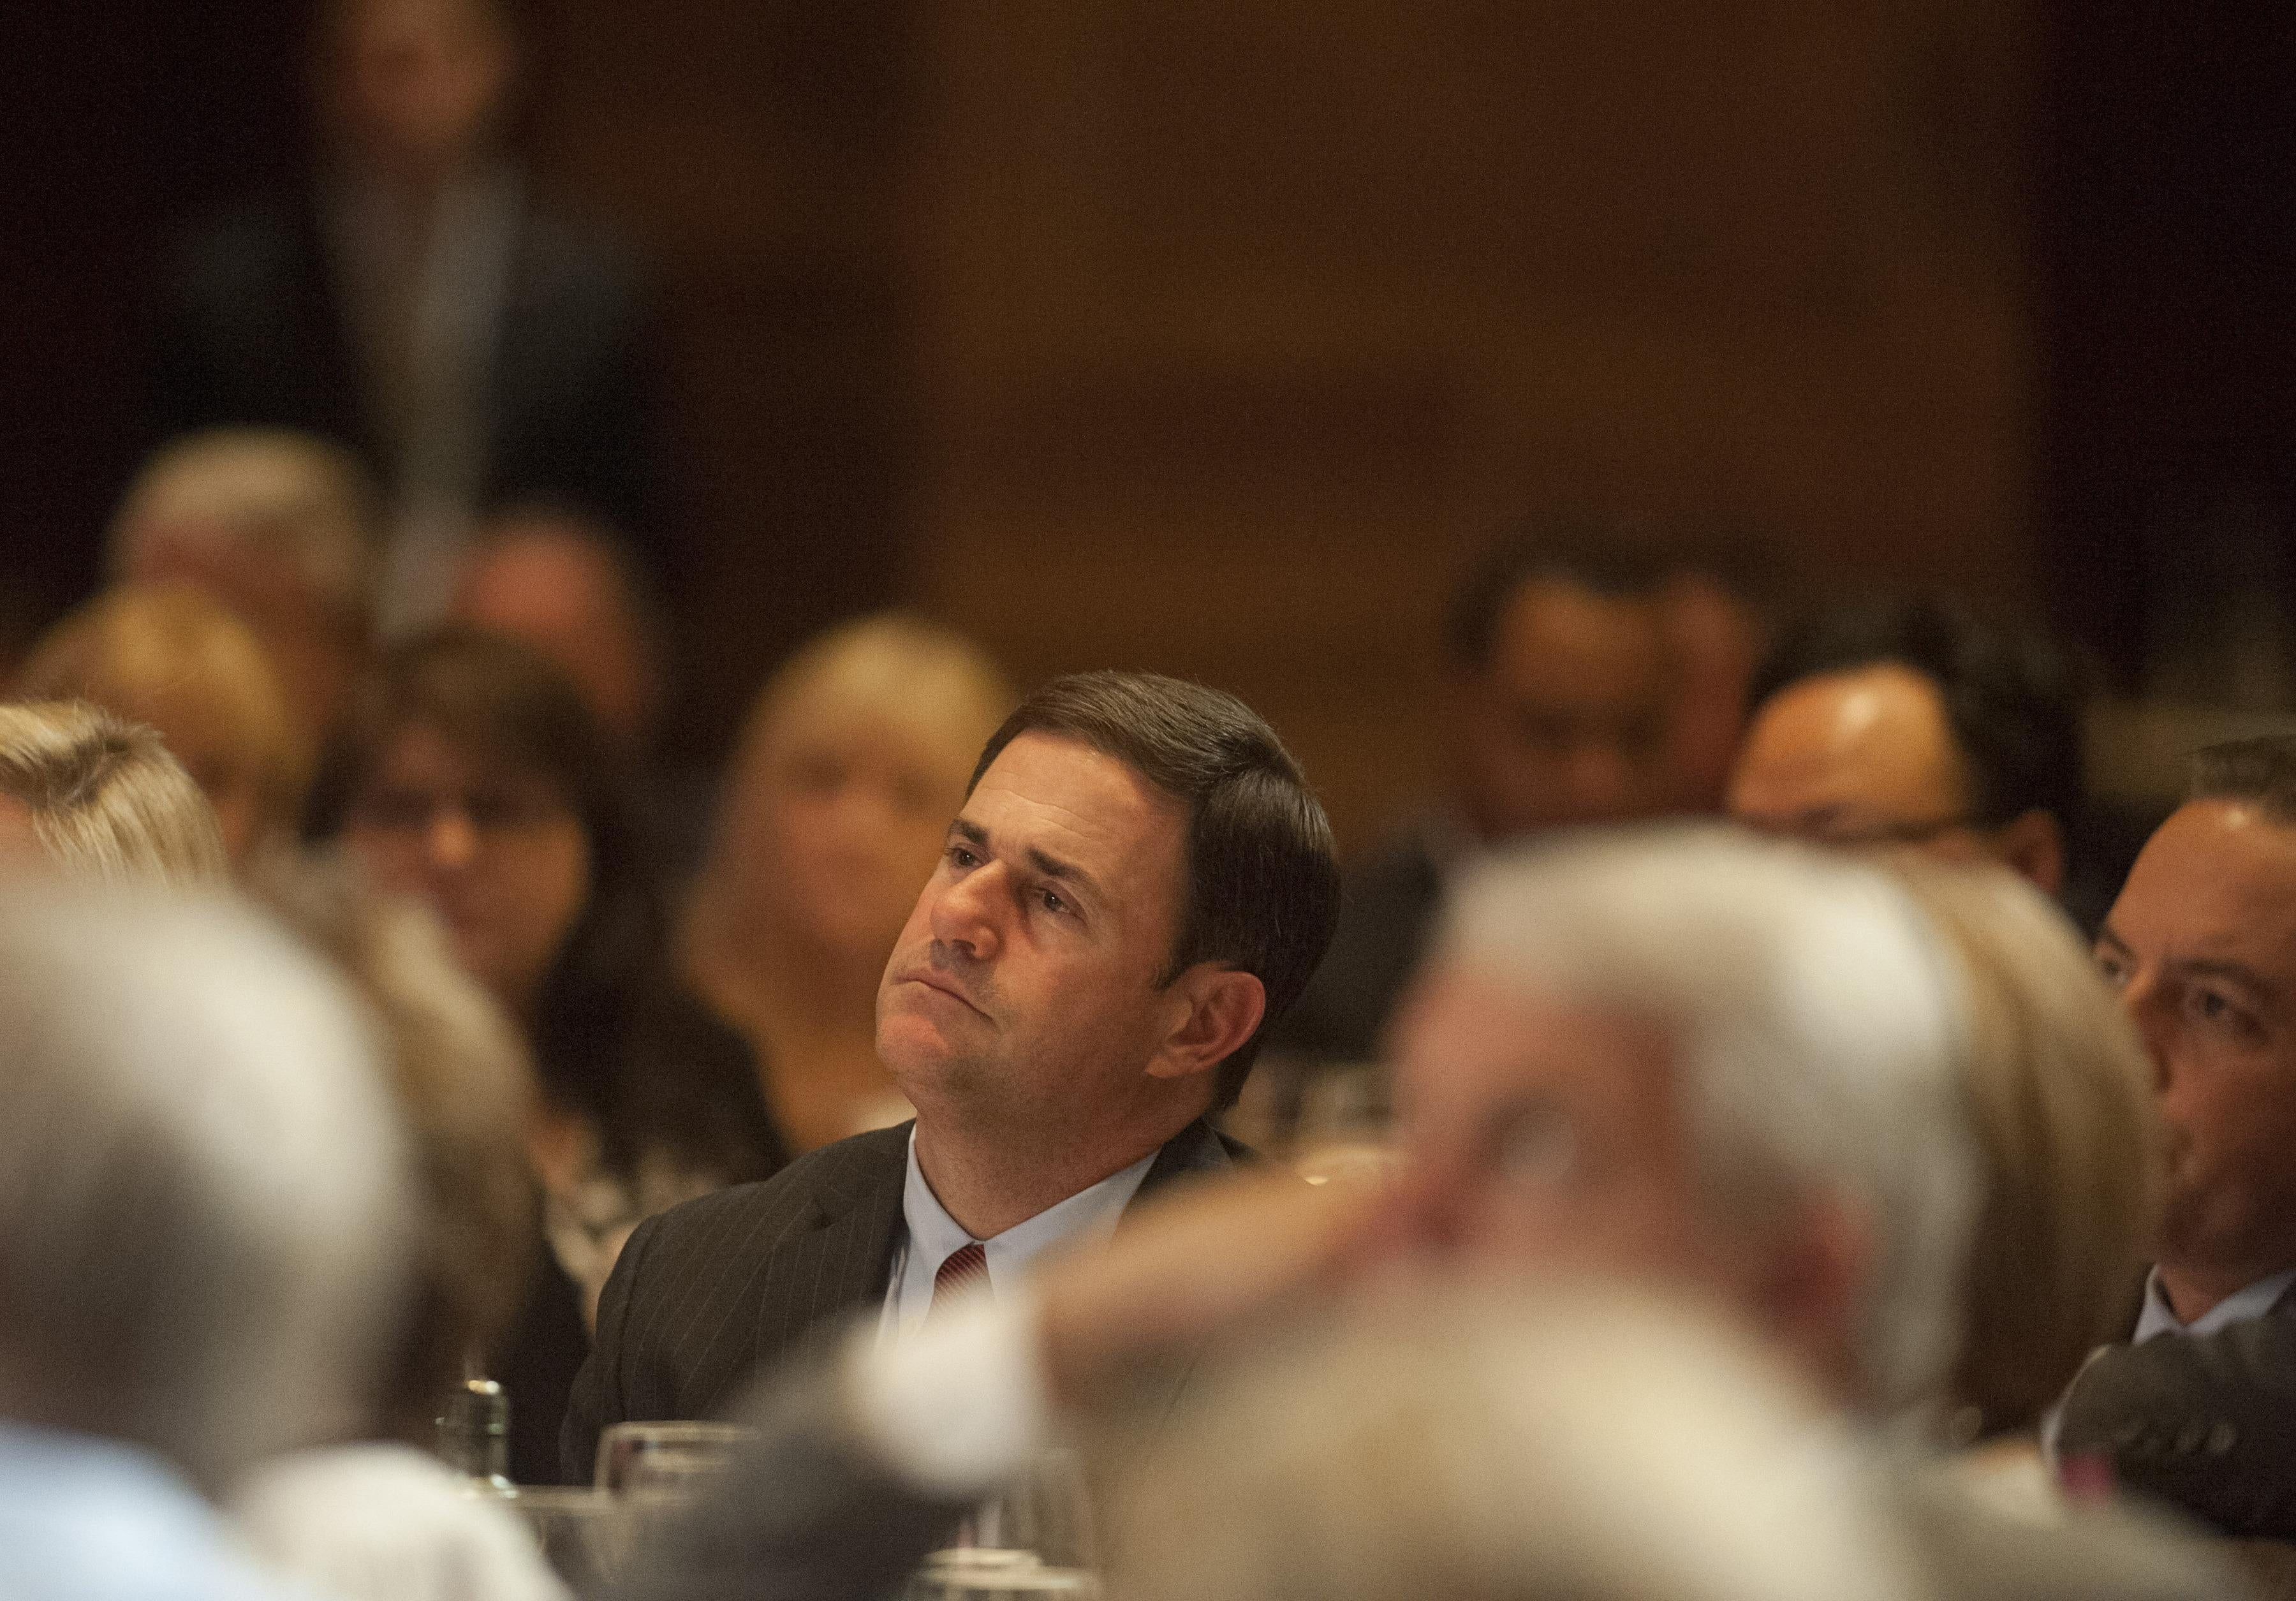 SCOTTSDALE, AZ  - MAY  14:  Arizona Gov. Doug Ducey listens as former Florida Gov. Jeb Bush speaks at a dinner during the Republican National Committee Spring Meeting  at The Phoenician  May 14, 2015 in Scottsdale, Arizona. Bush, brother of former President George W. Bush and son of former President George H.W. Bush, is widely expected to run for the Republican nomination for president in 2016.  (Photo by Laura Segall/Getty Images)